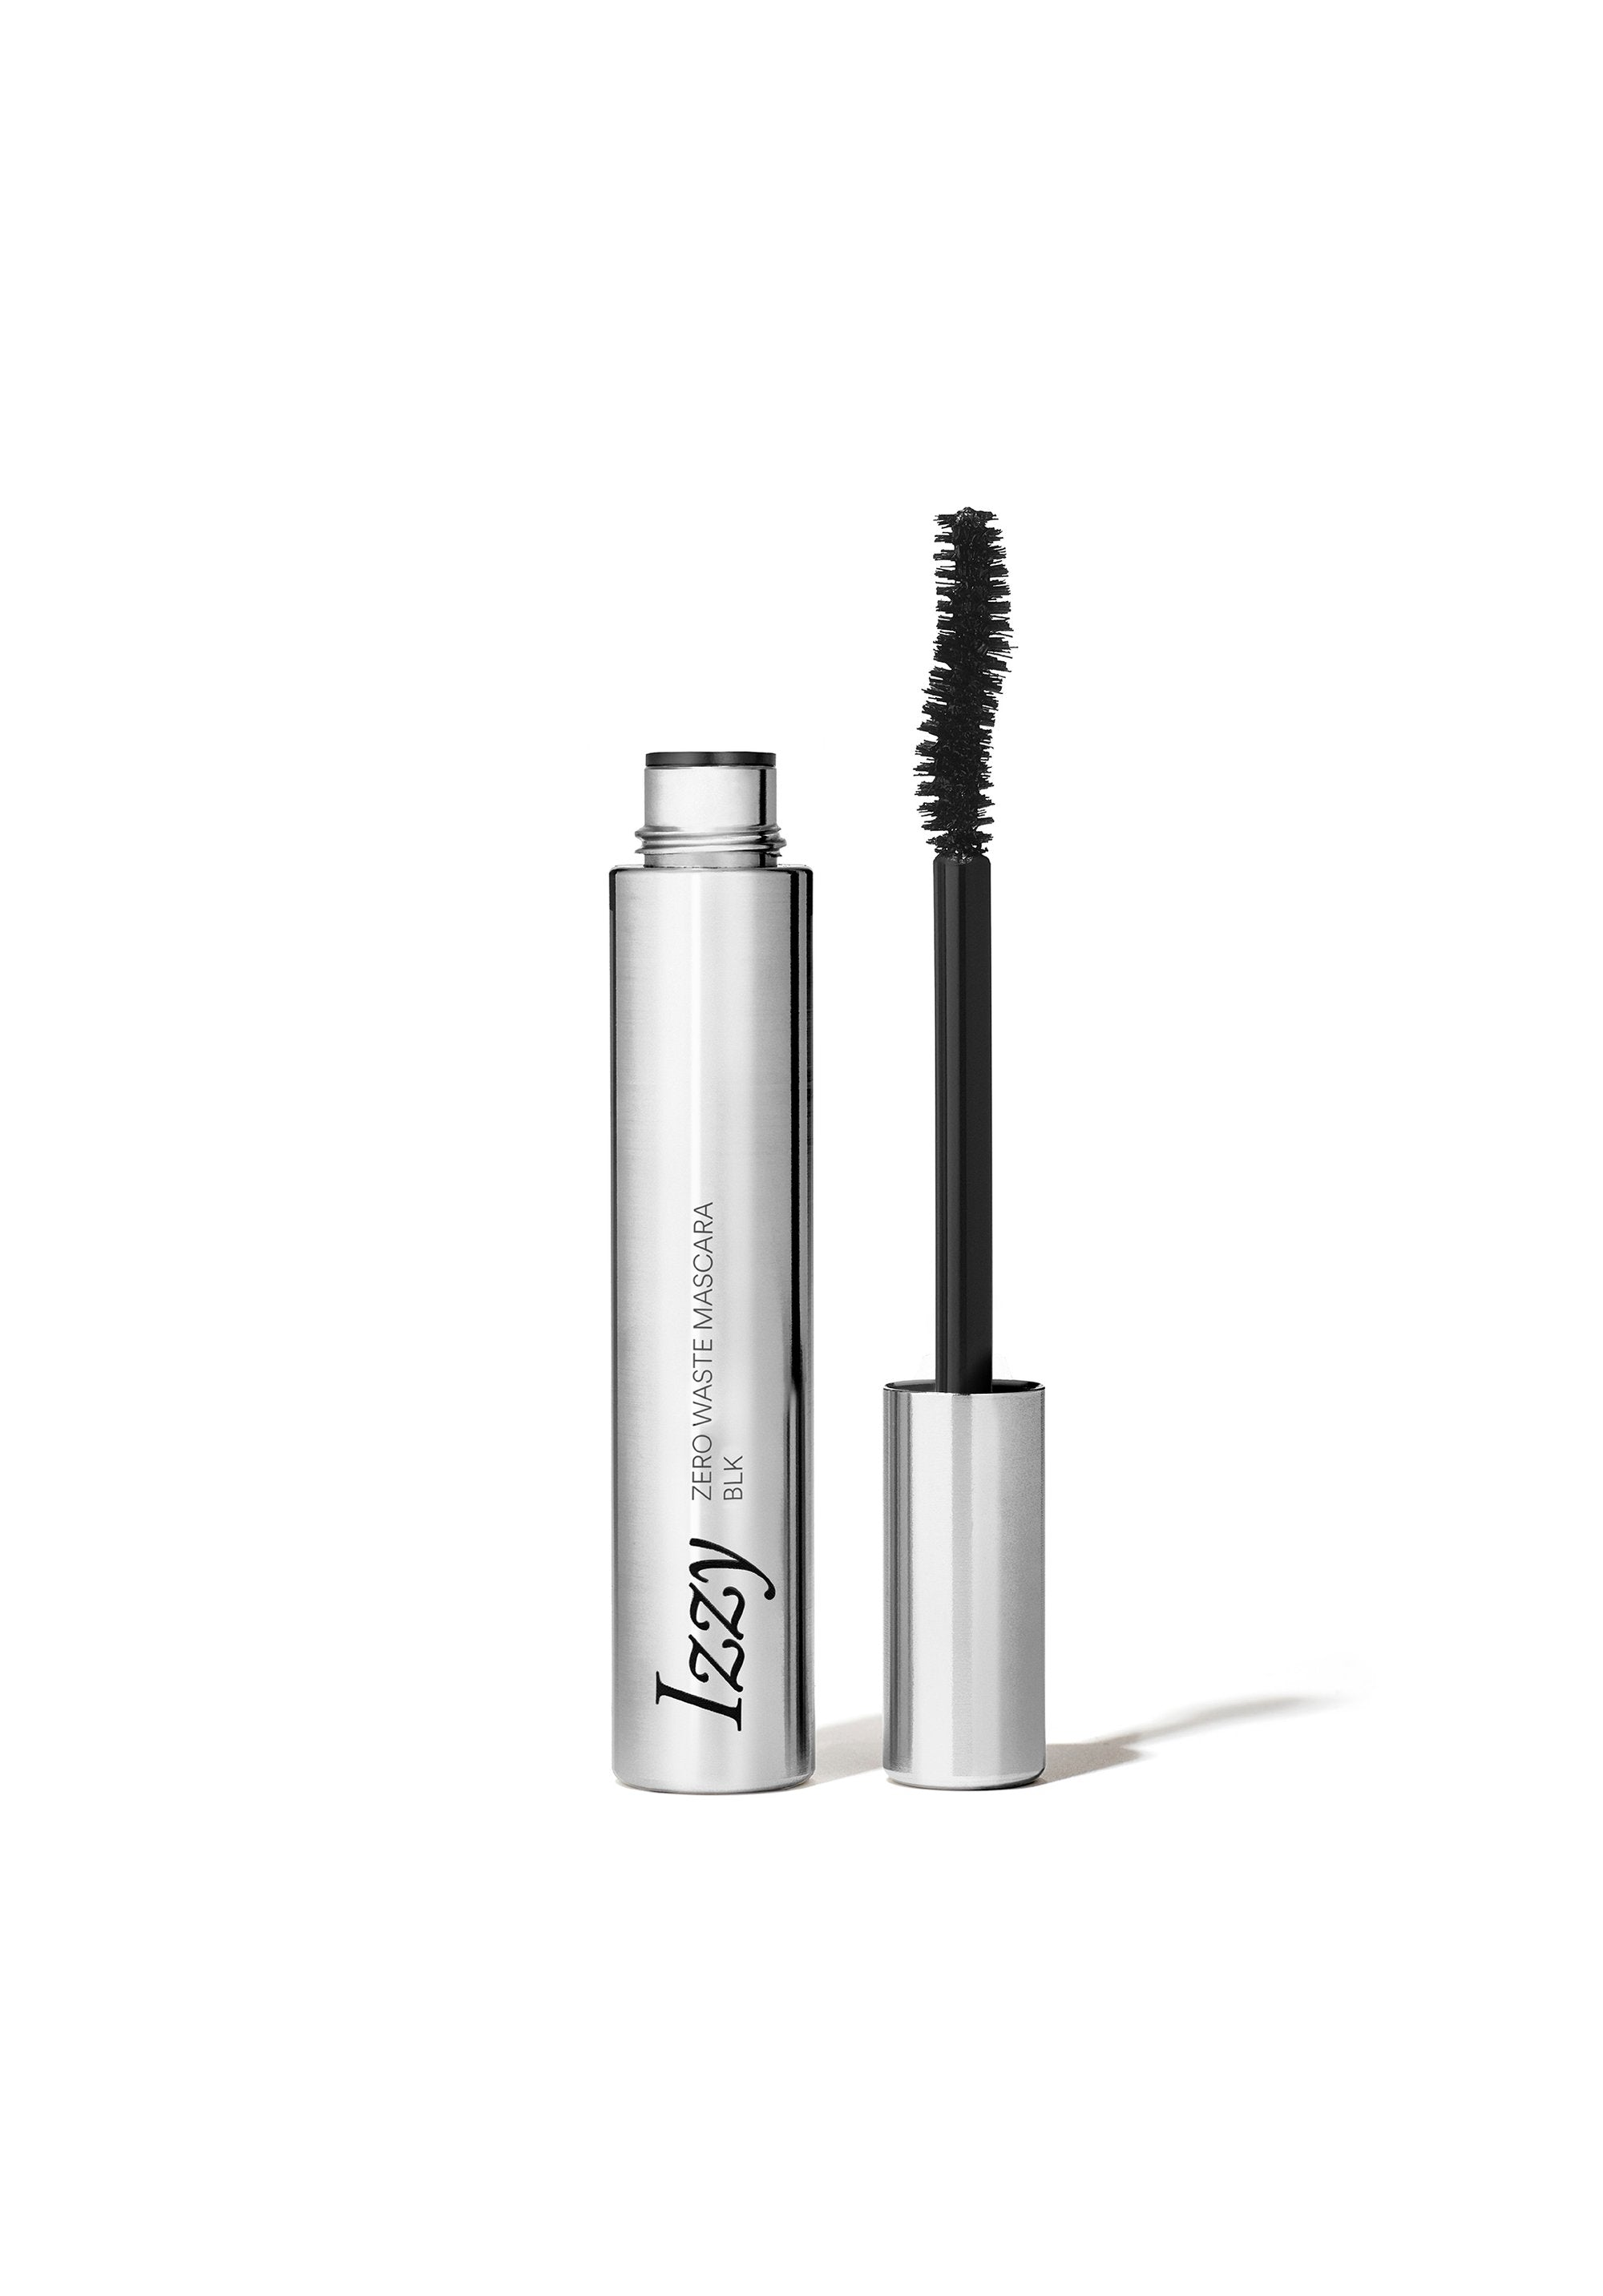 Stainless Steel mascara upright tube and upside down wand side by side. Tube reads: Izzy: Zero Waste Mascara BLK